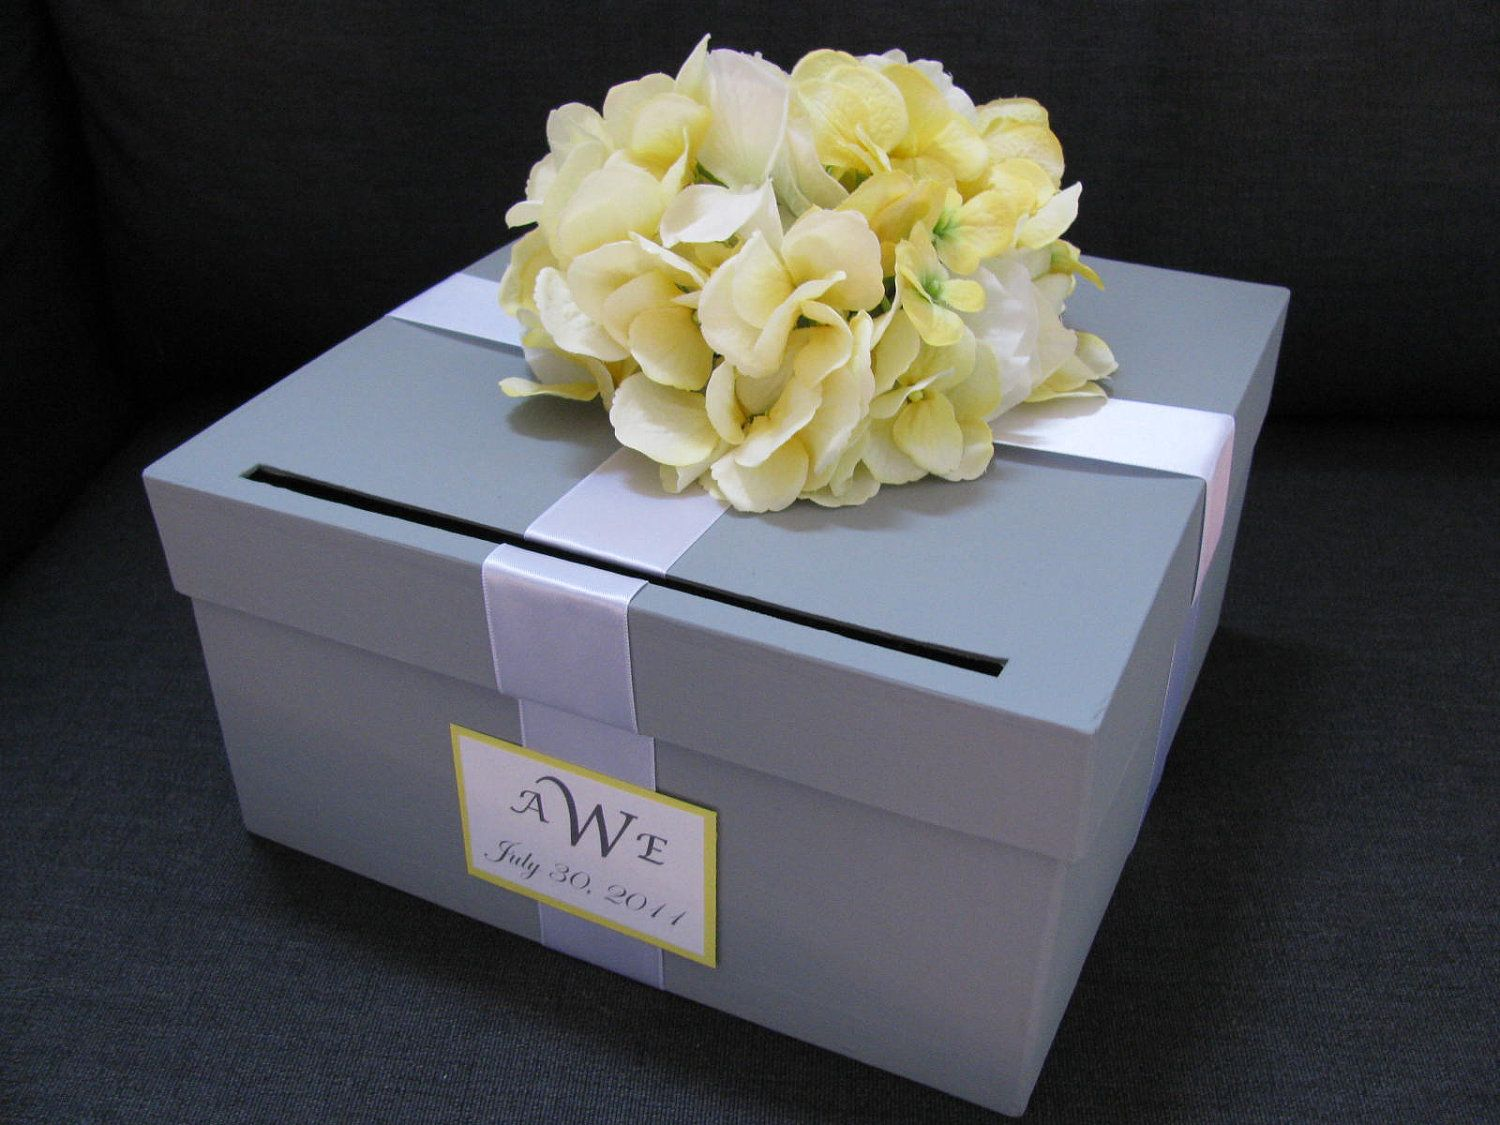 Gray wedding card box with yellow hydrangeas and personalized tag